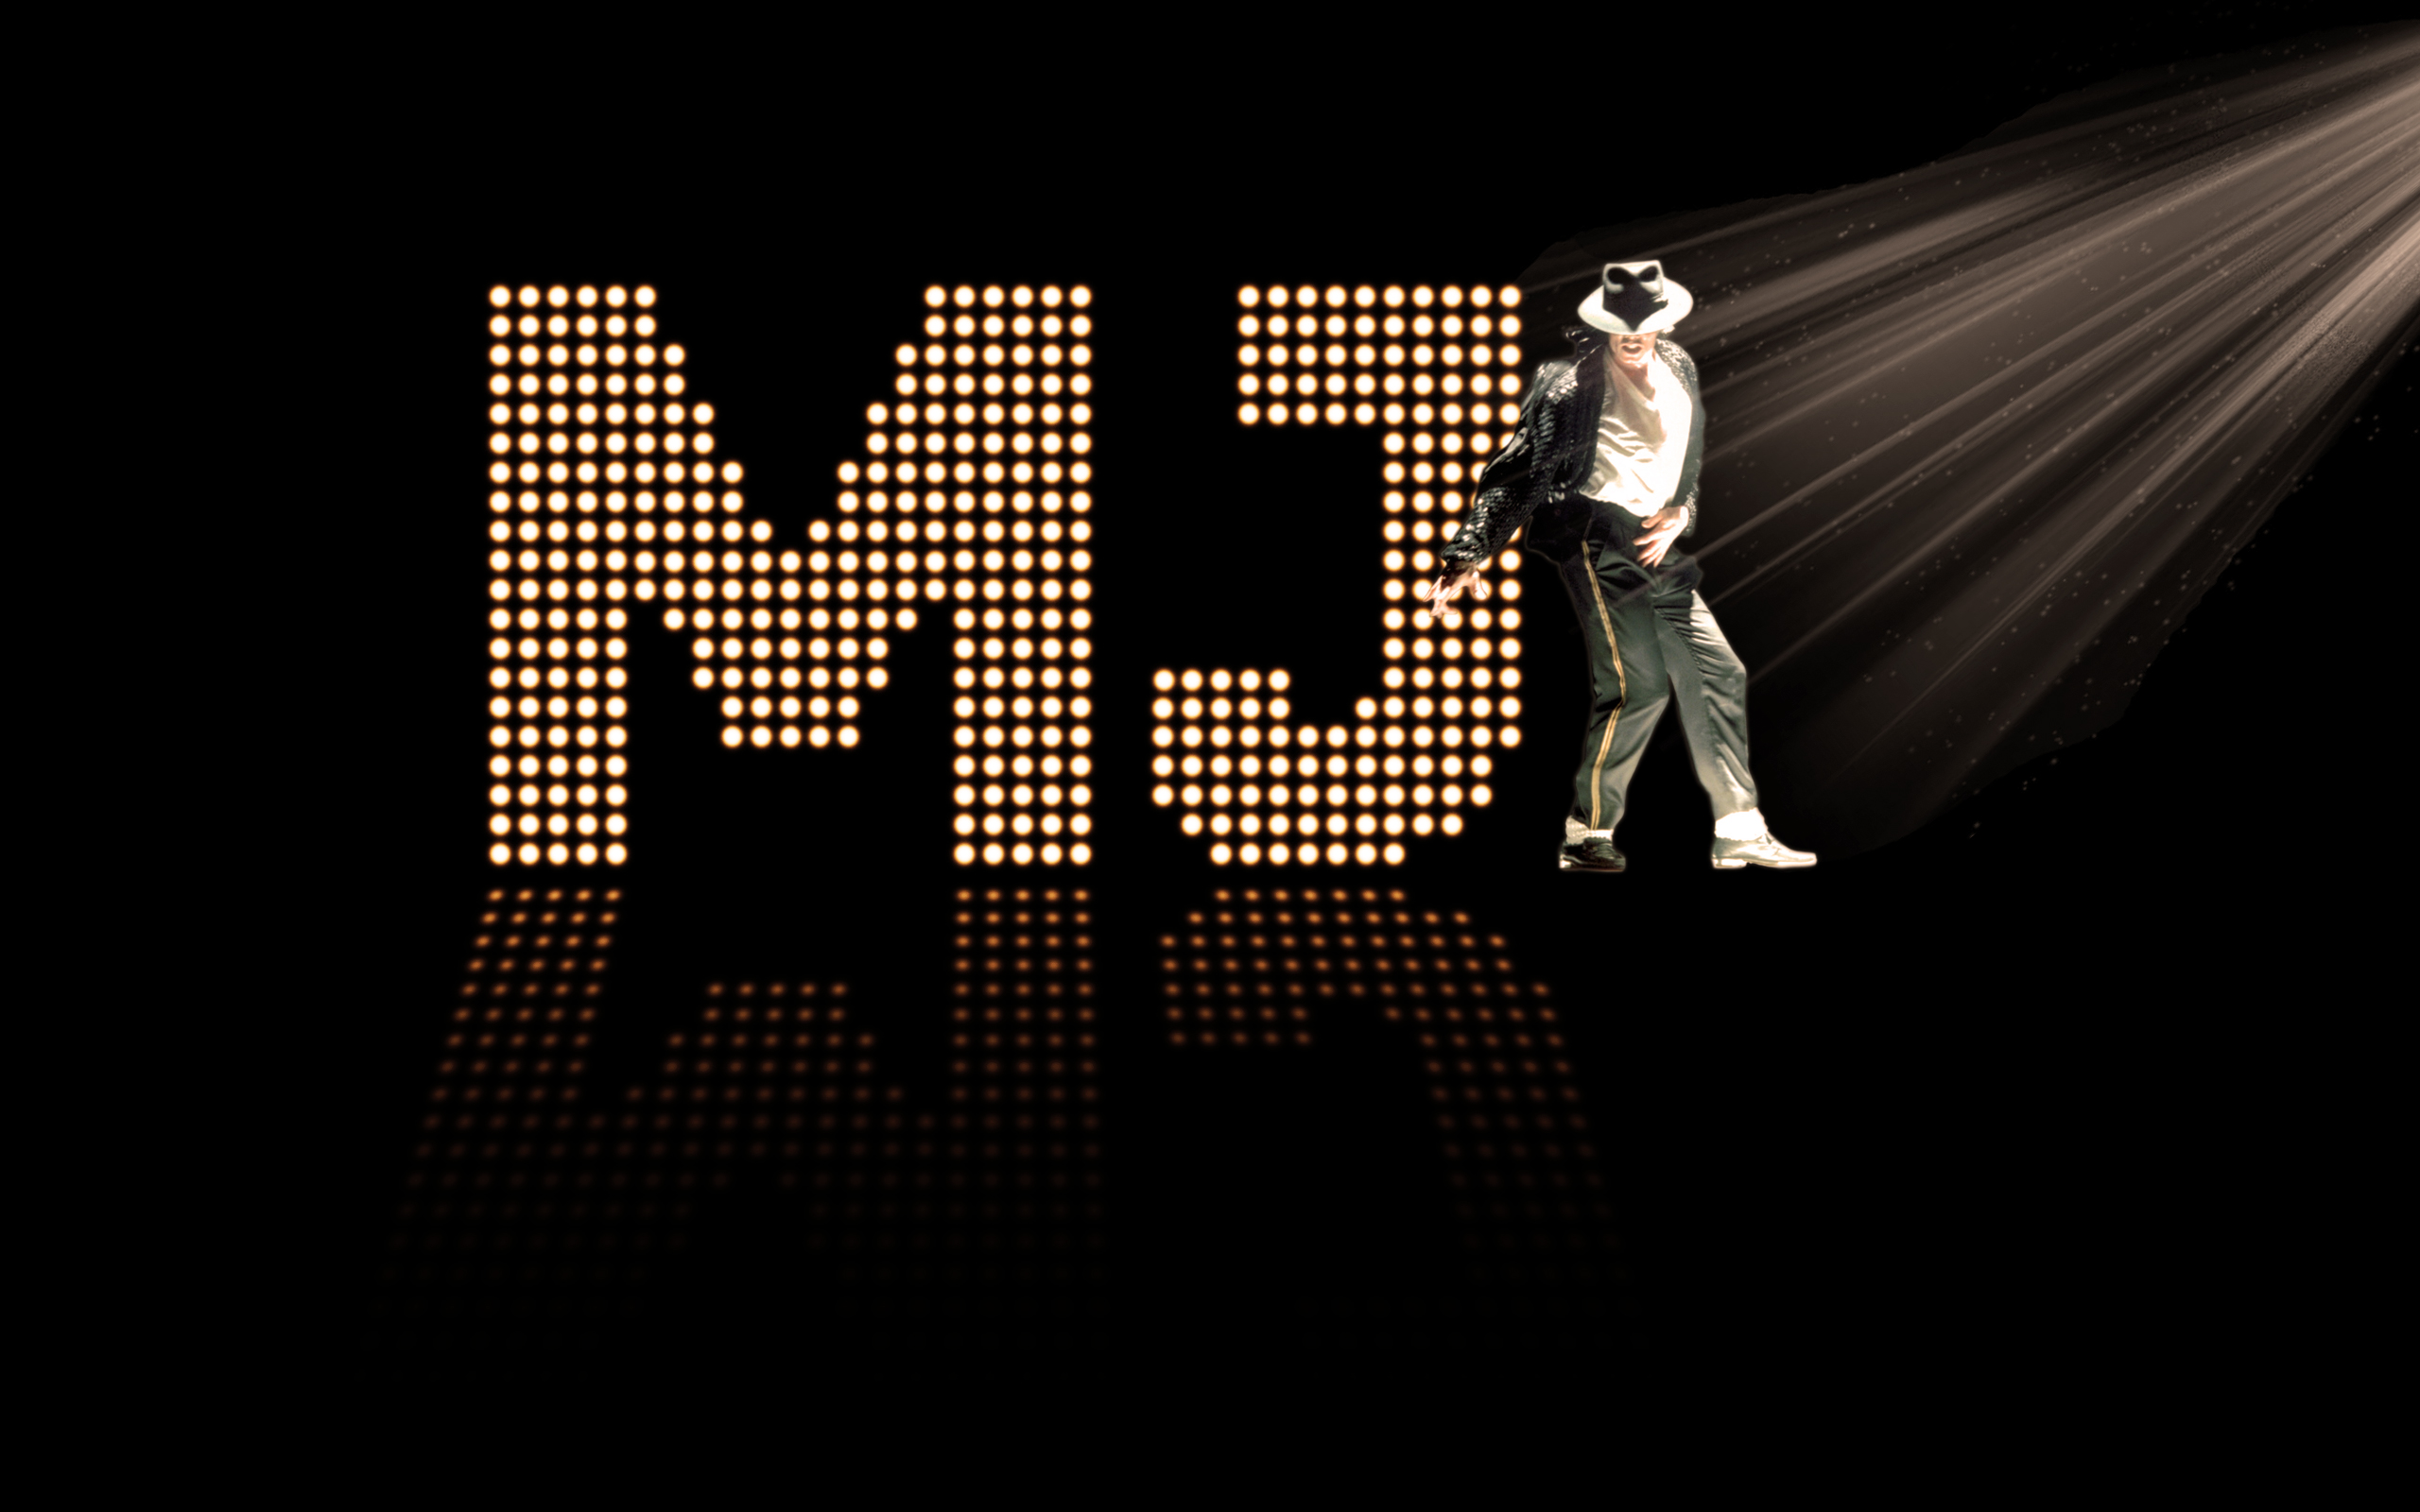 michael jackson wallpaper 27371619 fanpop